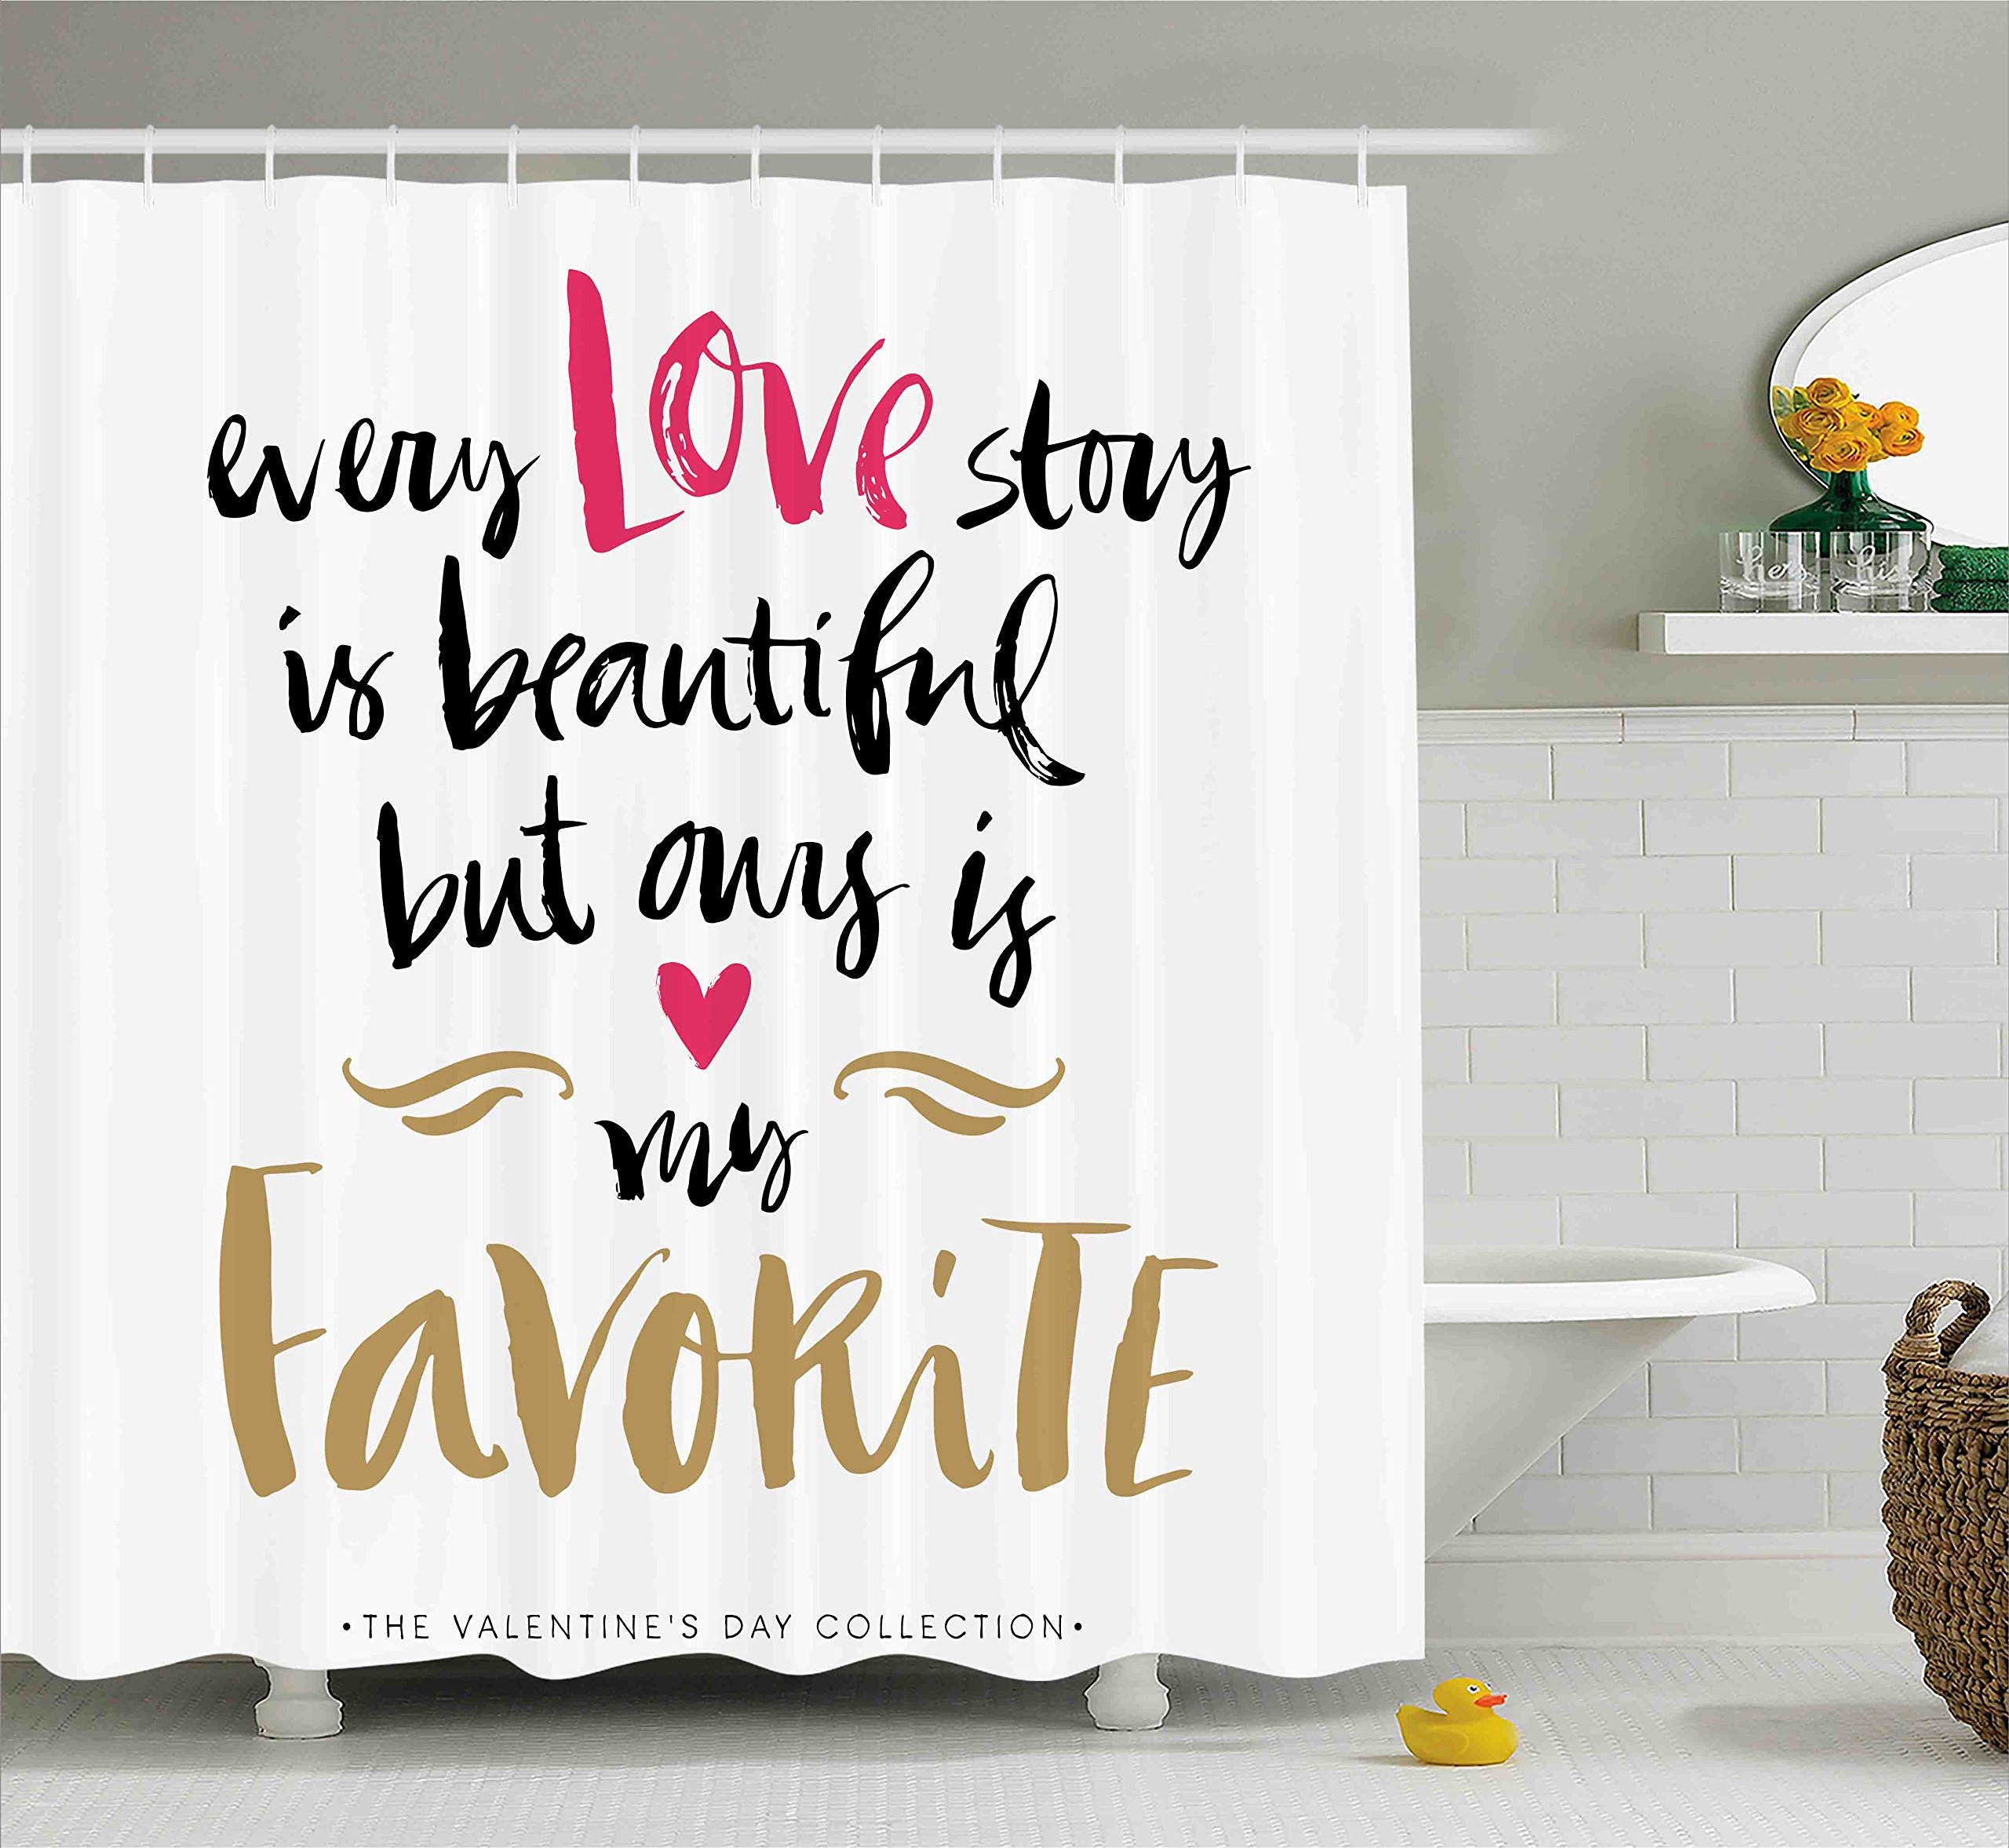 Ambesonne Valentines Day Shower Curtain Set, Every Love Story is Beautiful but Ours is My Favorite Quote Romantic Idea, Fabric Bathroom Decor with Hooks, 70 Inches, White Black Pink